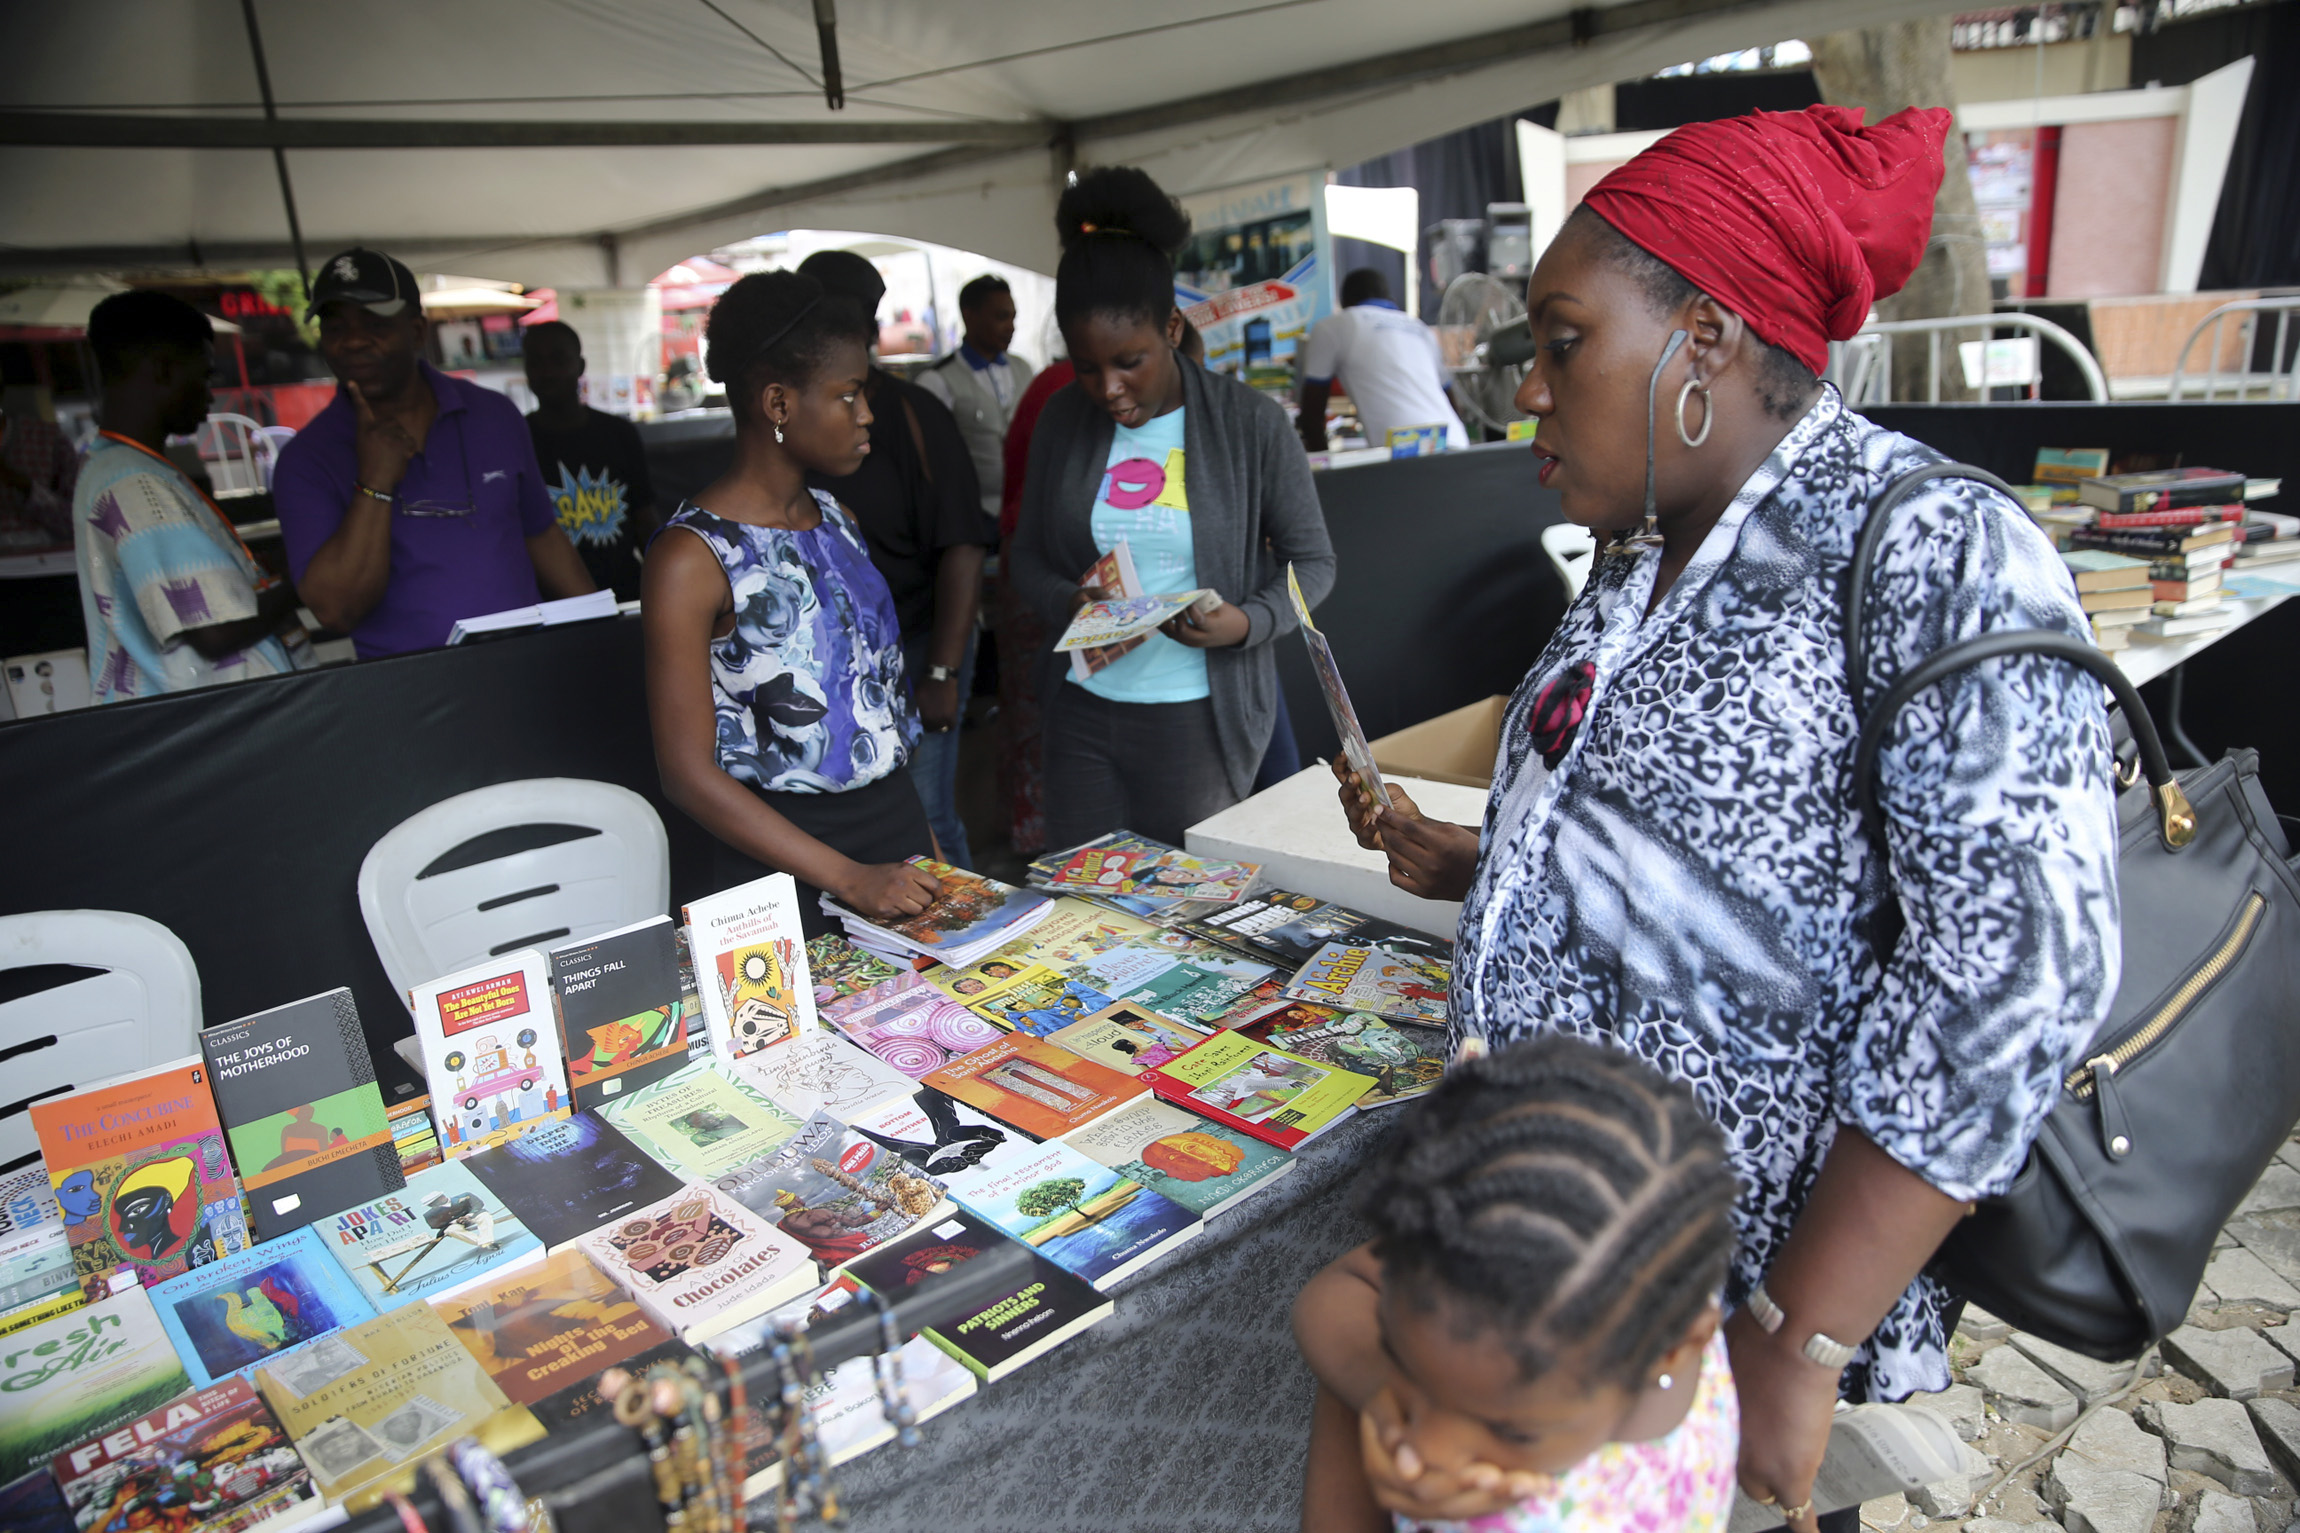 Books are displayed at the Lagos Book and Art Festival November 15, 2014.